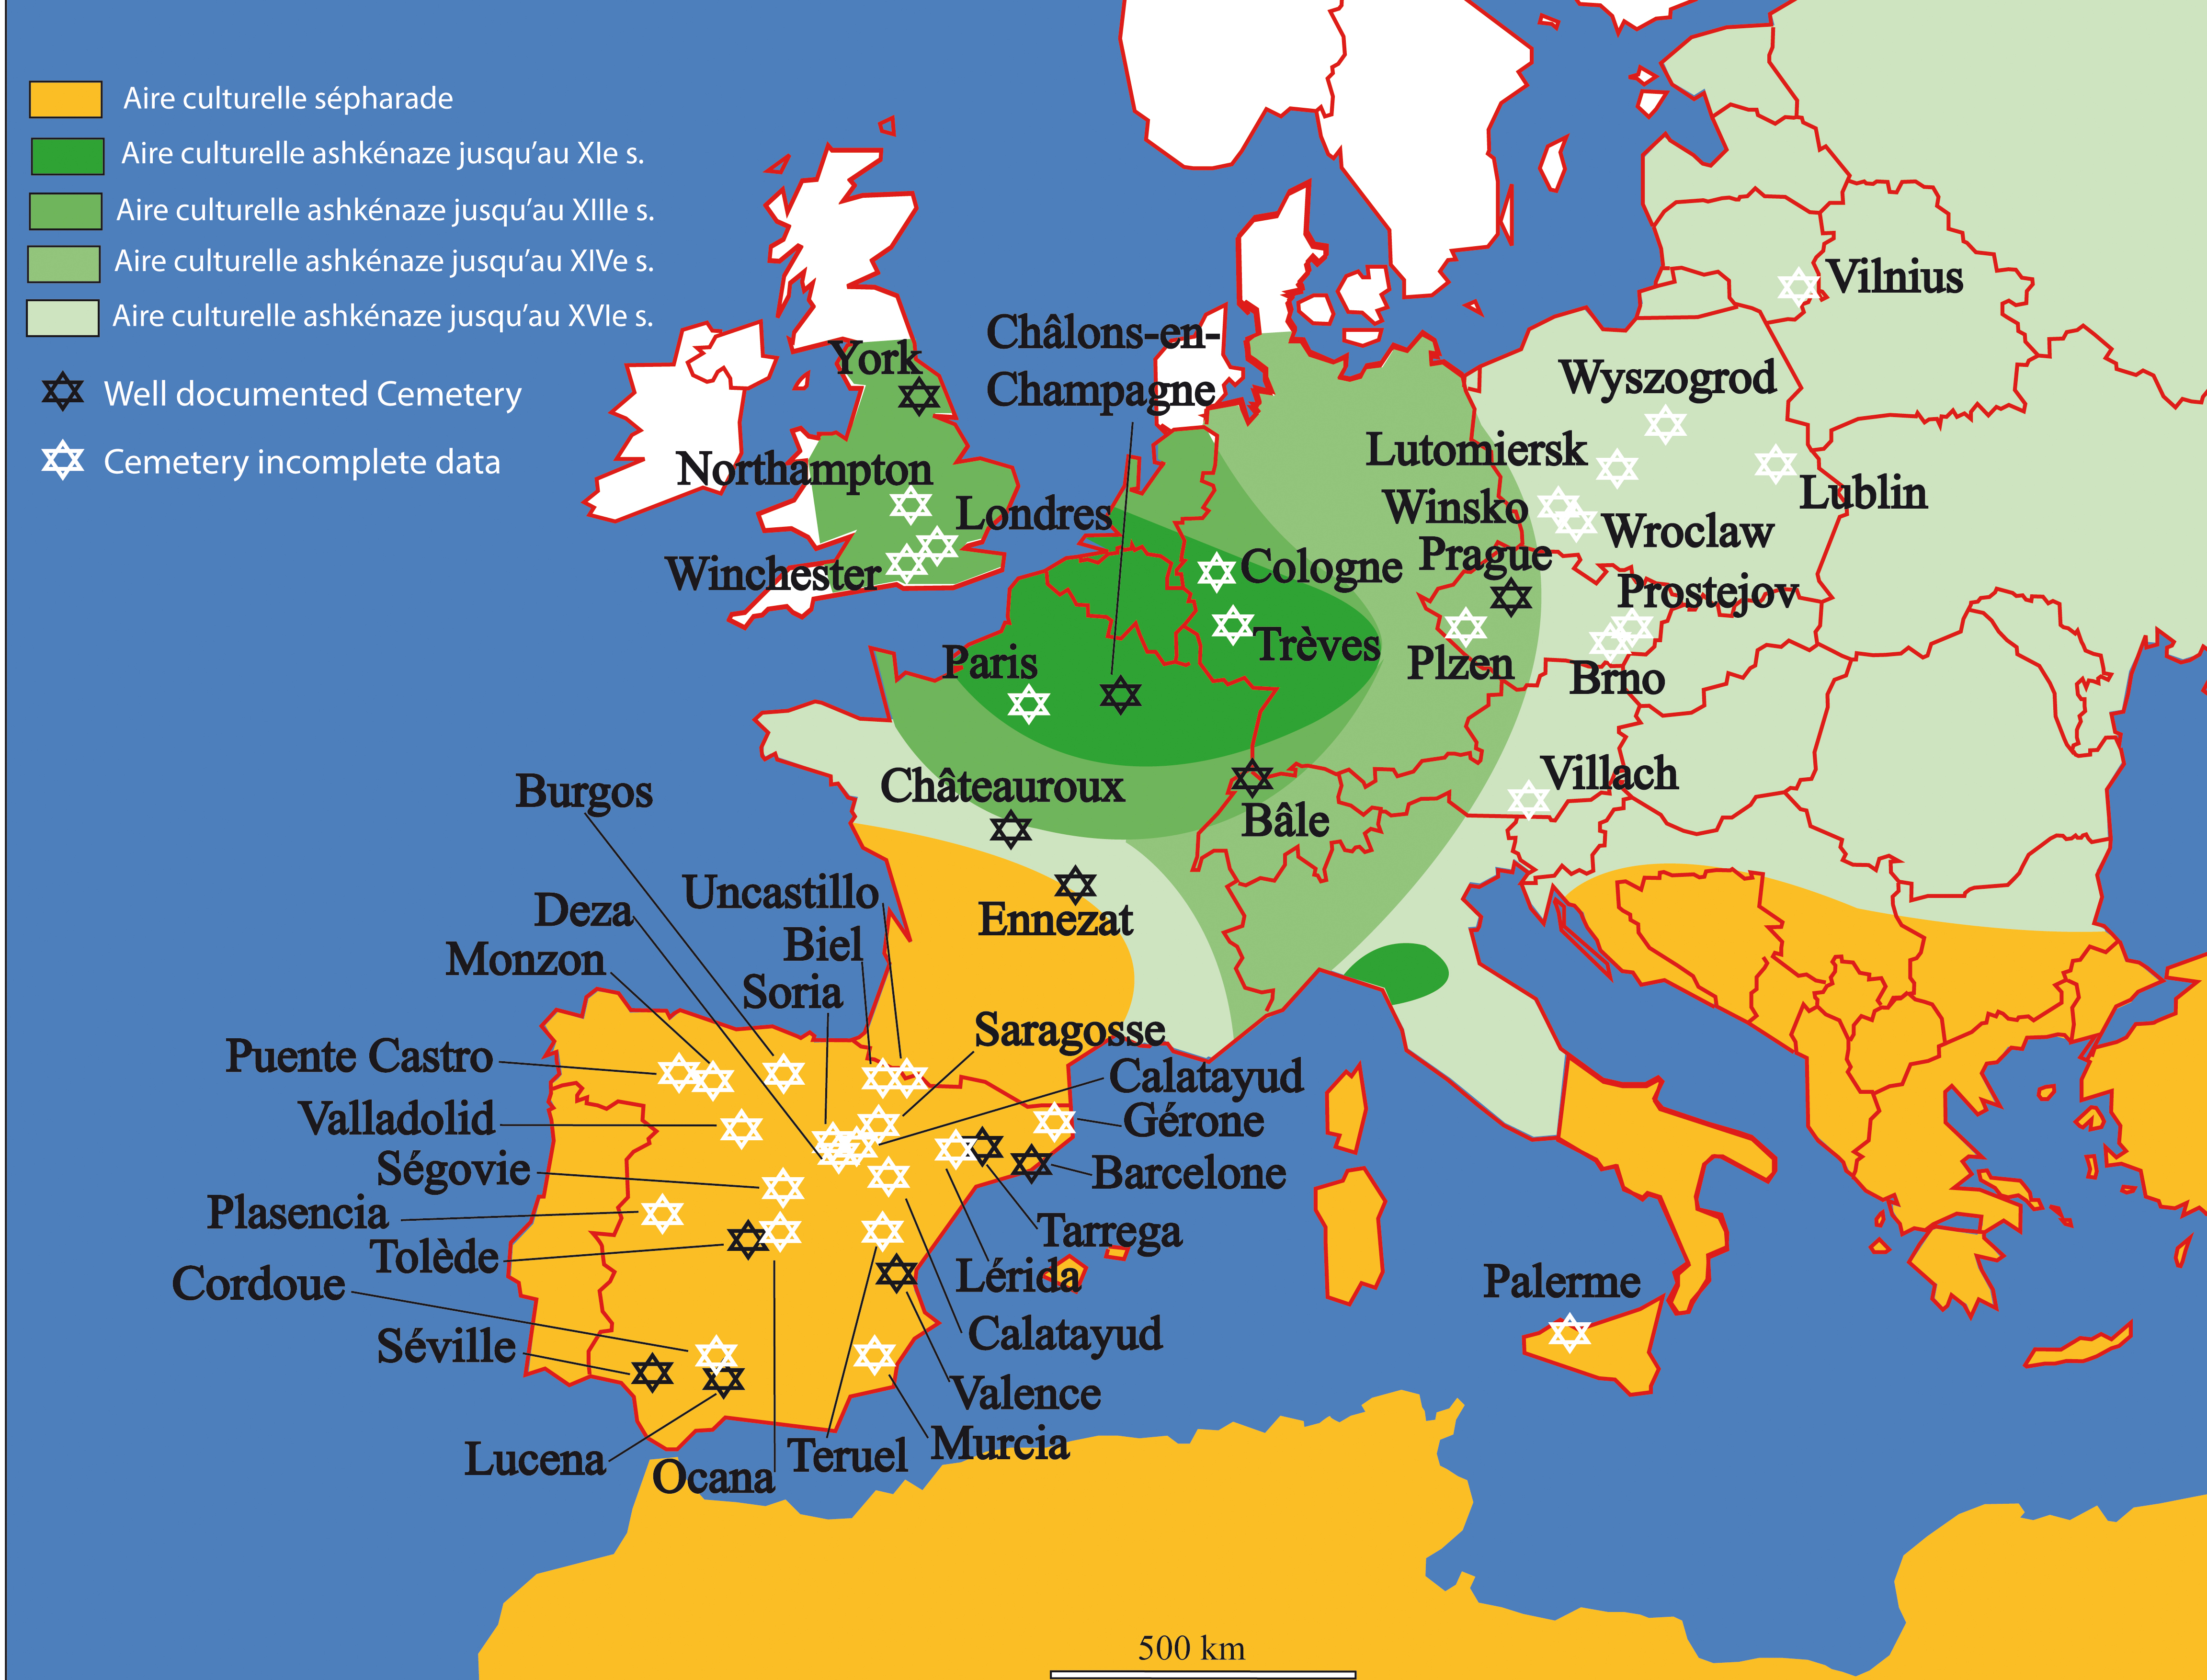 Jewish cemeteries in Europe - map